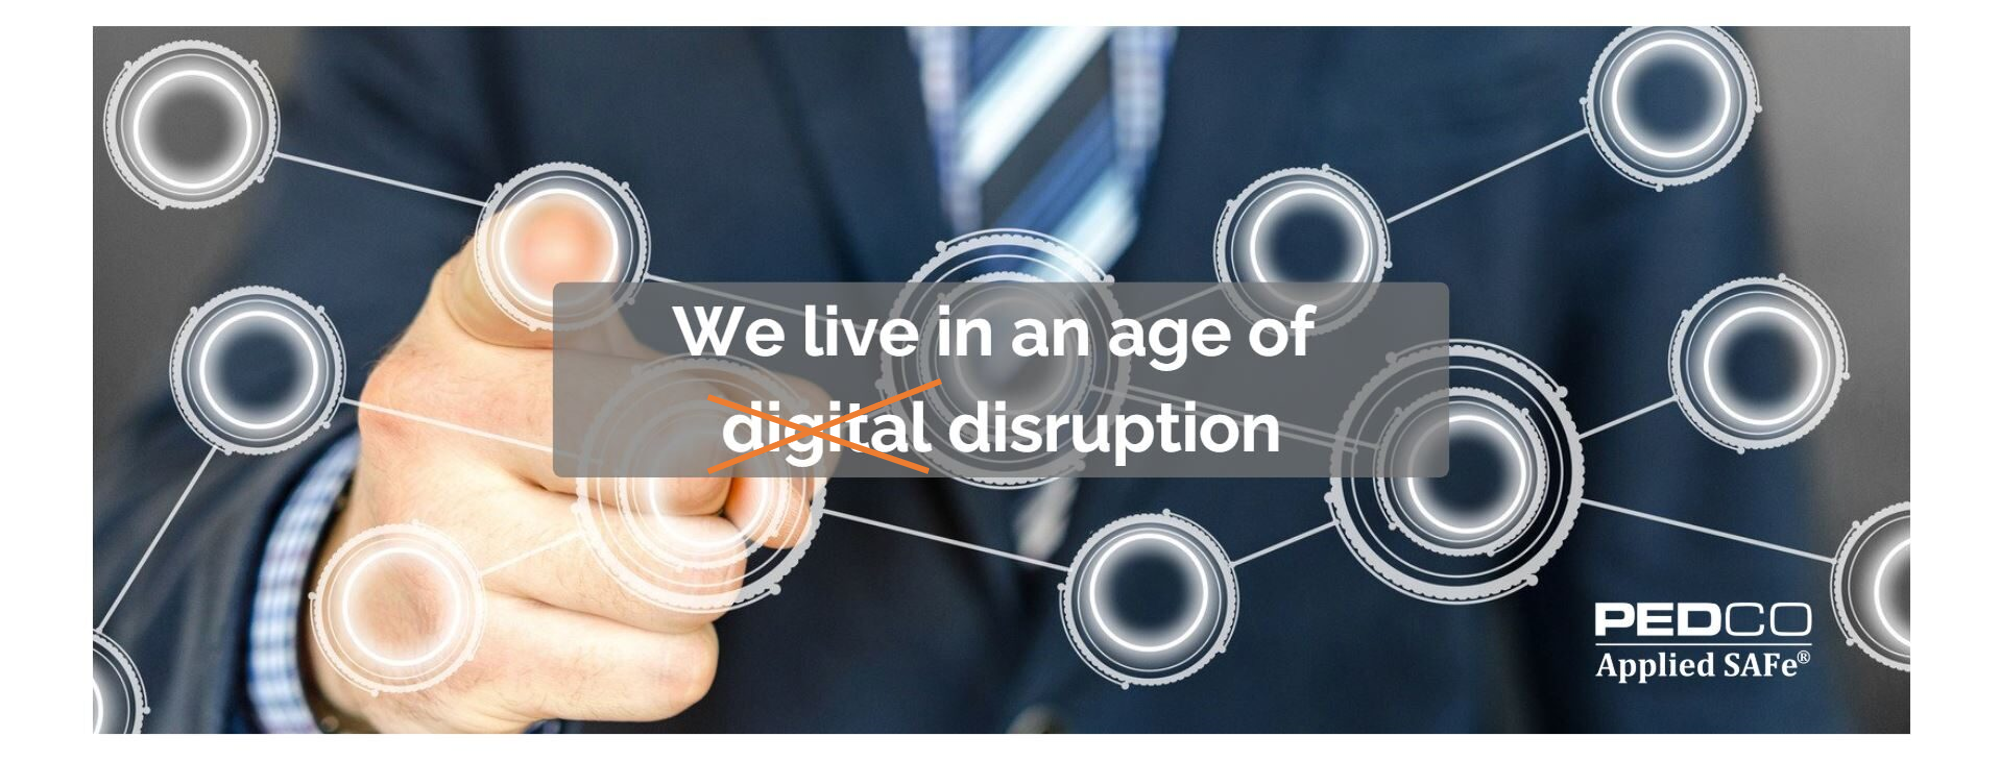 We live in an age of disruption